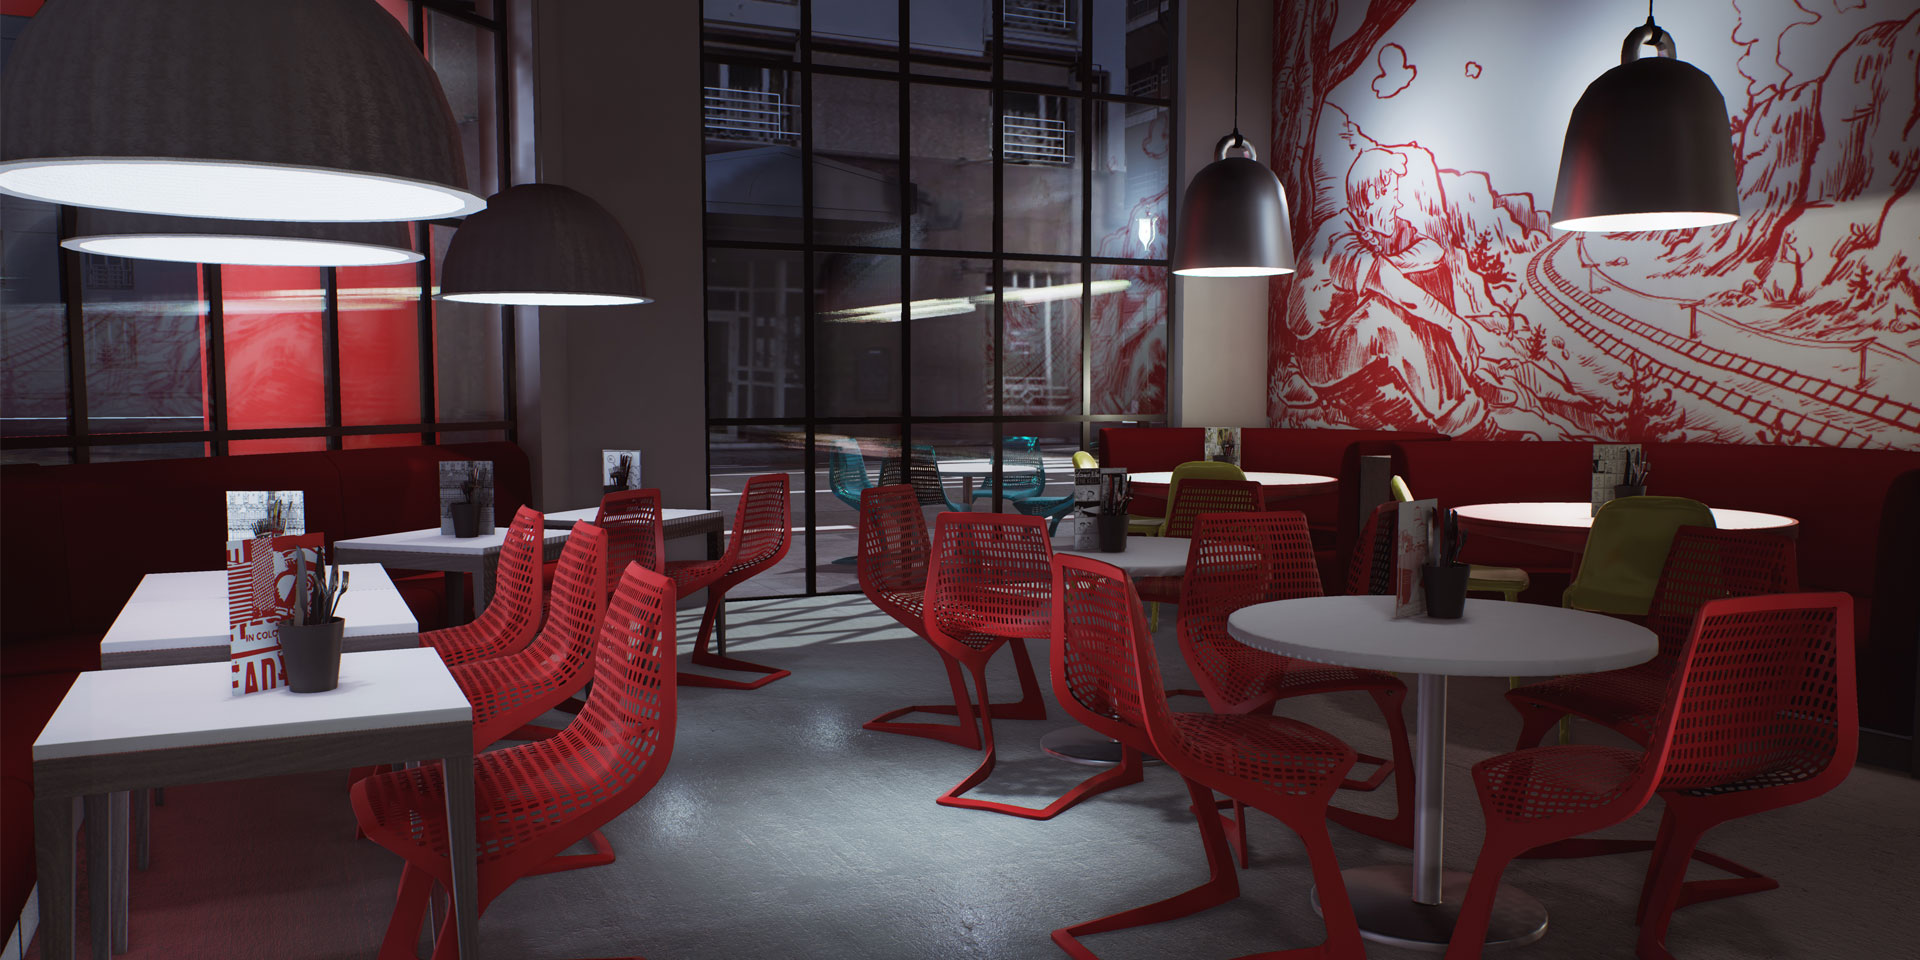 Soluis Group & Carlson Rezidor Hotel Group - Building RED in UE4